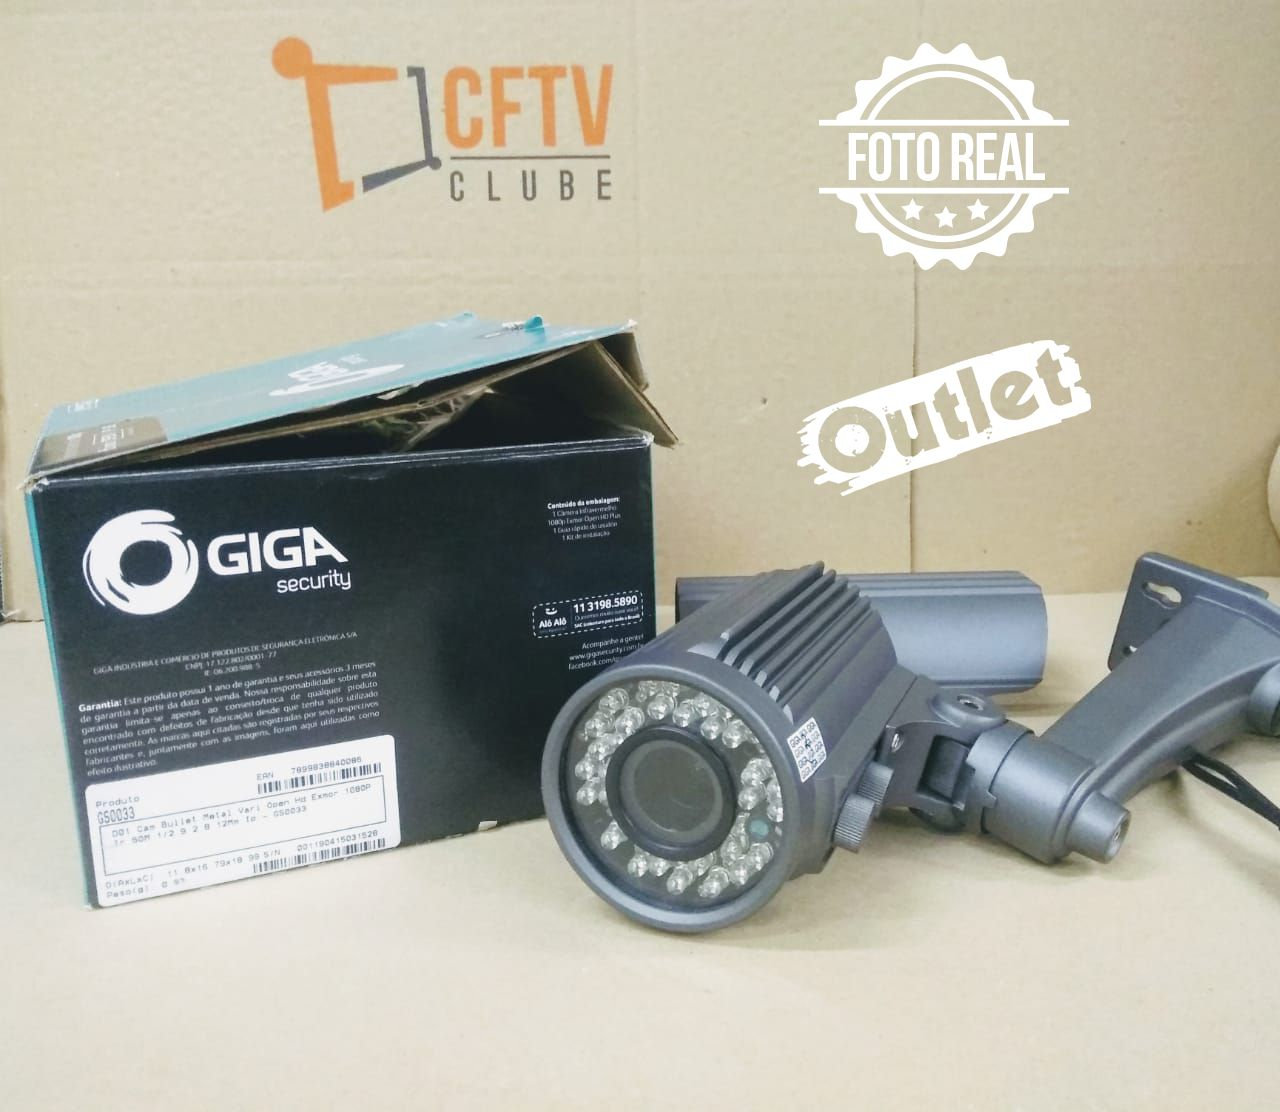 Outlet - Câmera Giga GS0033 Bullet Varifocal Open HD Sony Exmor IR 50M UTC DWDR IP66 (2.0MP | 1080p | 2.8~12mm | Metal)  - CFTV Clube | Brasil